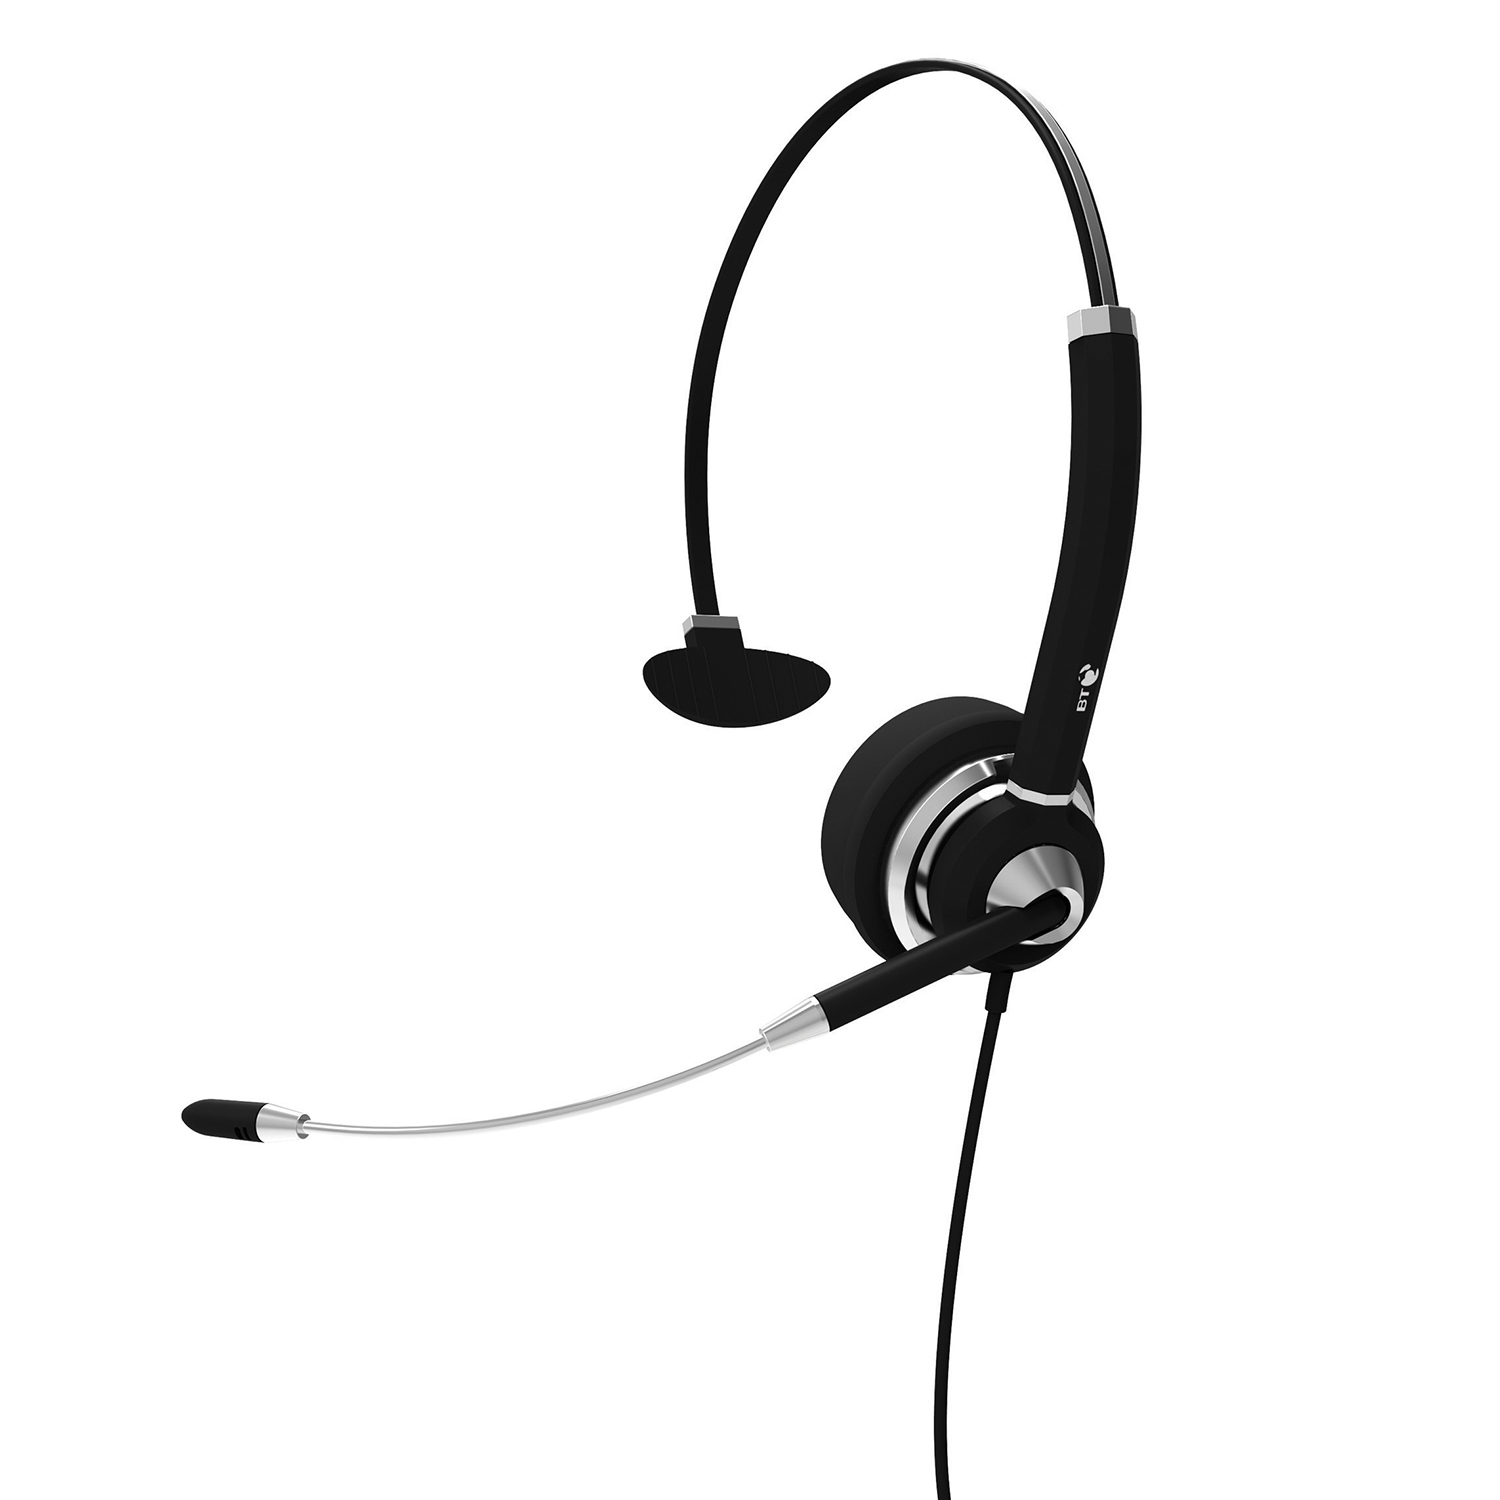 Corded Headsets: BT H31 Monaural Noise Cancelling Headset